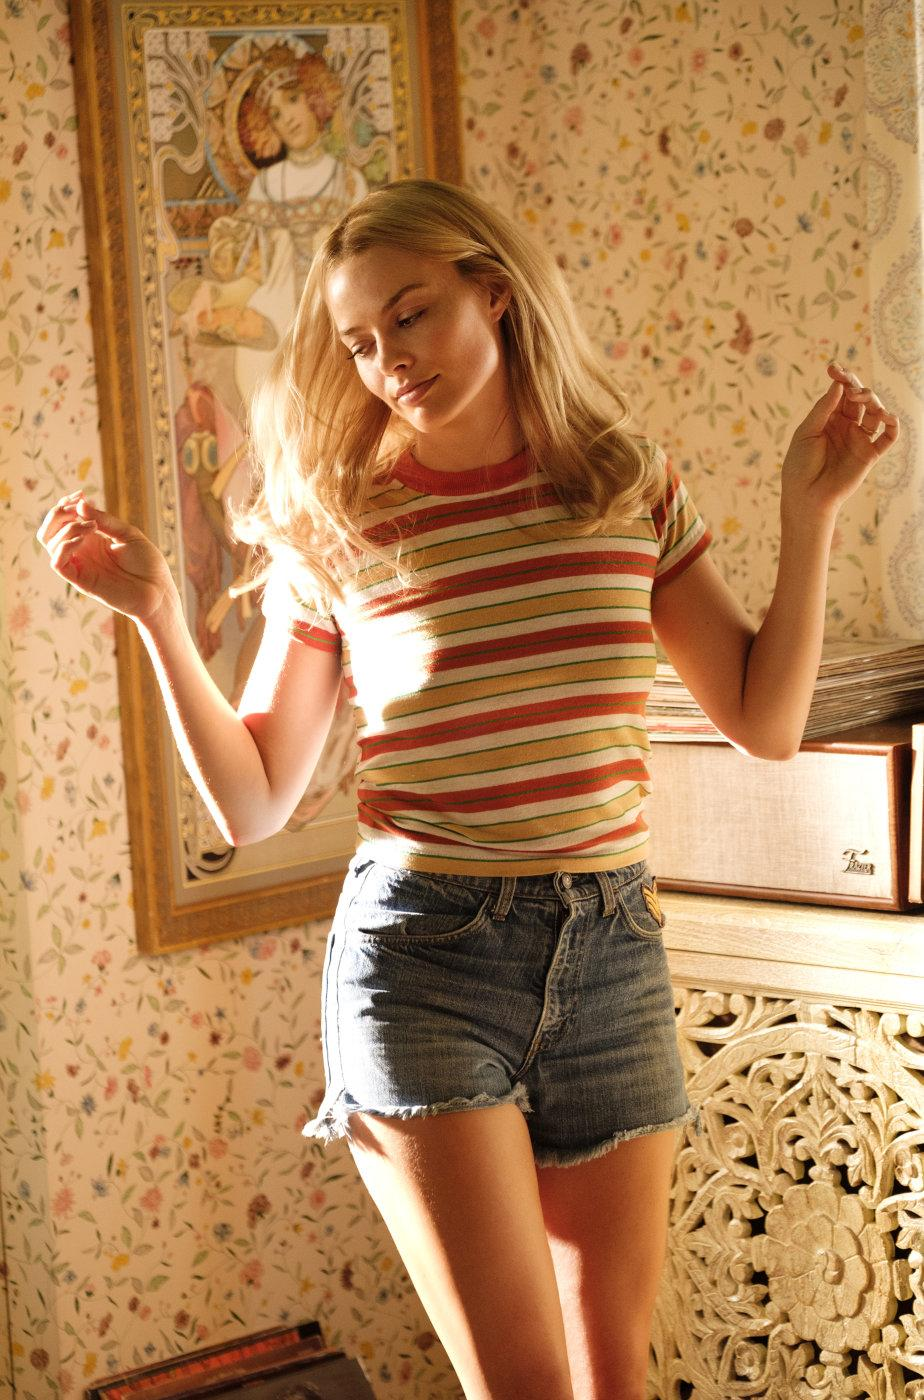 Margot Robbie in Once Upon A Time In Hollywood (Credit: Sony Pictures)